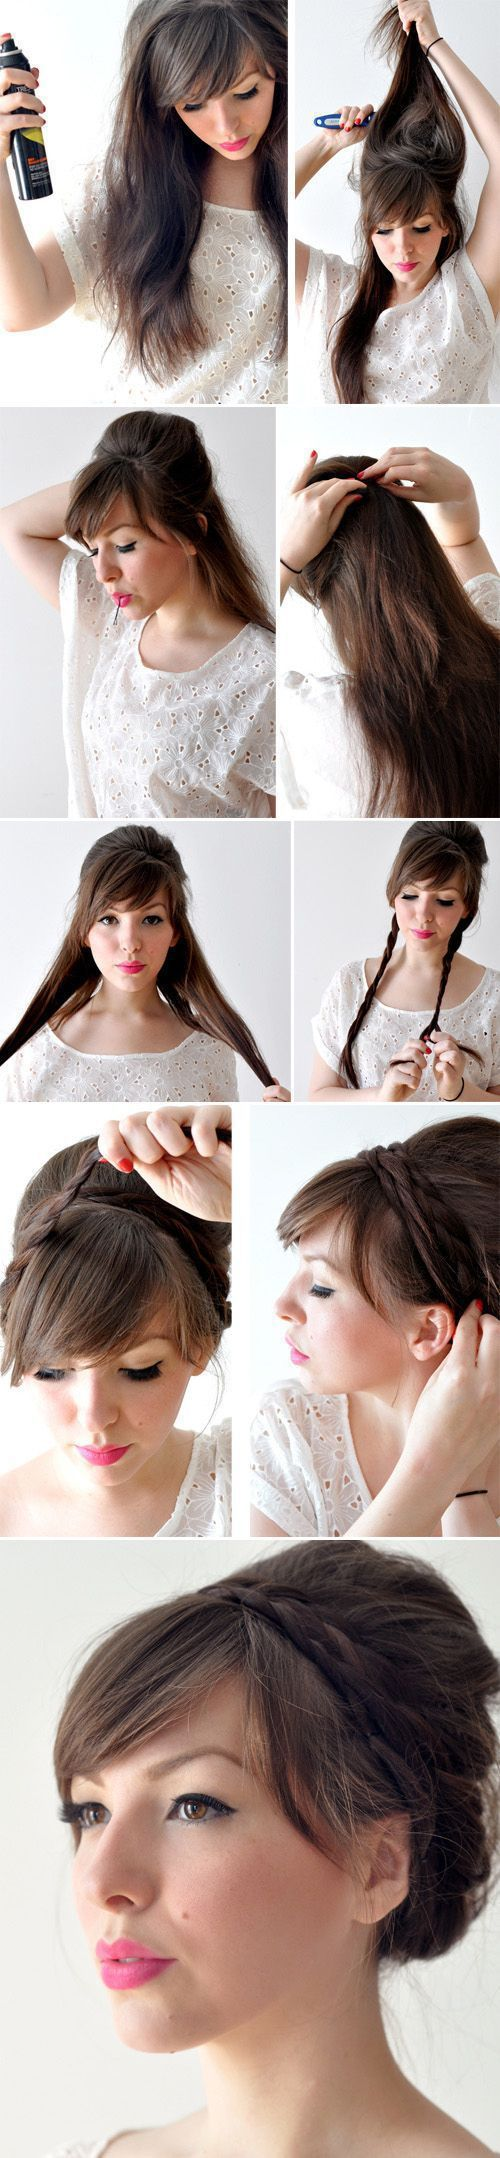 Hairstyles For Short Hair To Do At Home : Creative Hairstyles That You Can Easily Do at Home (27 pics ...